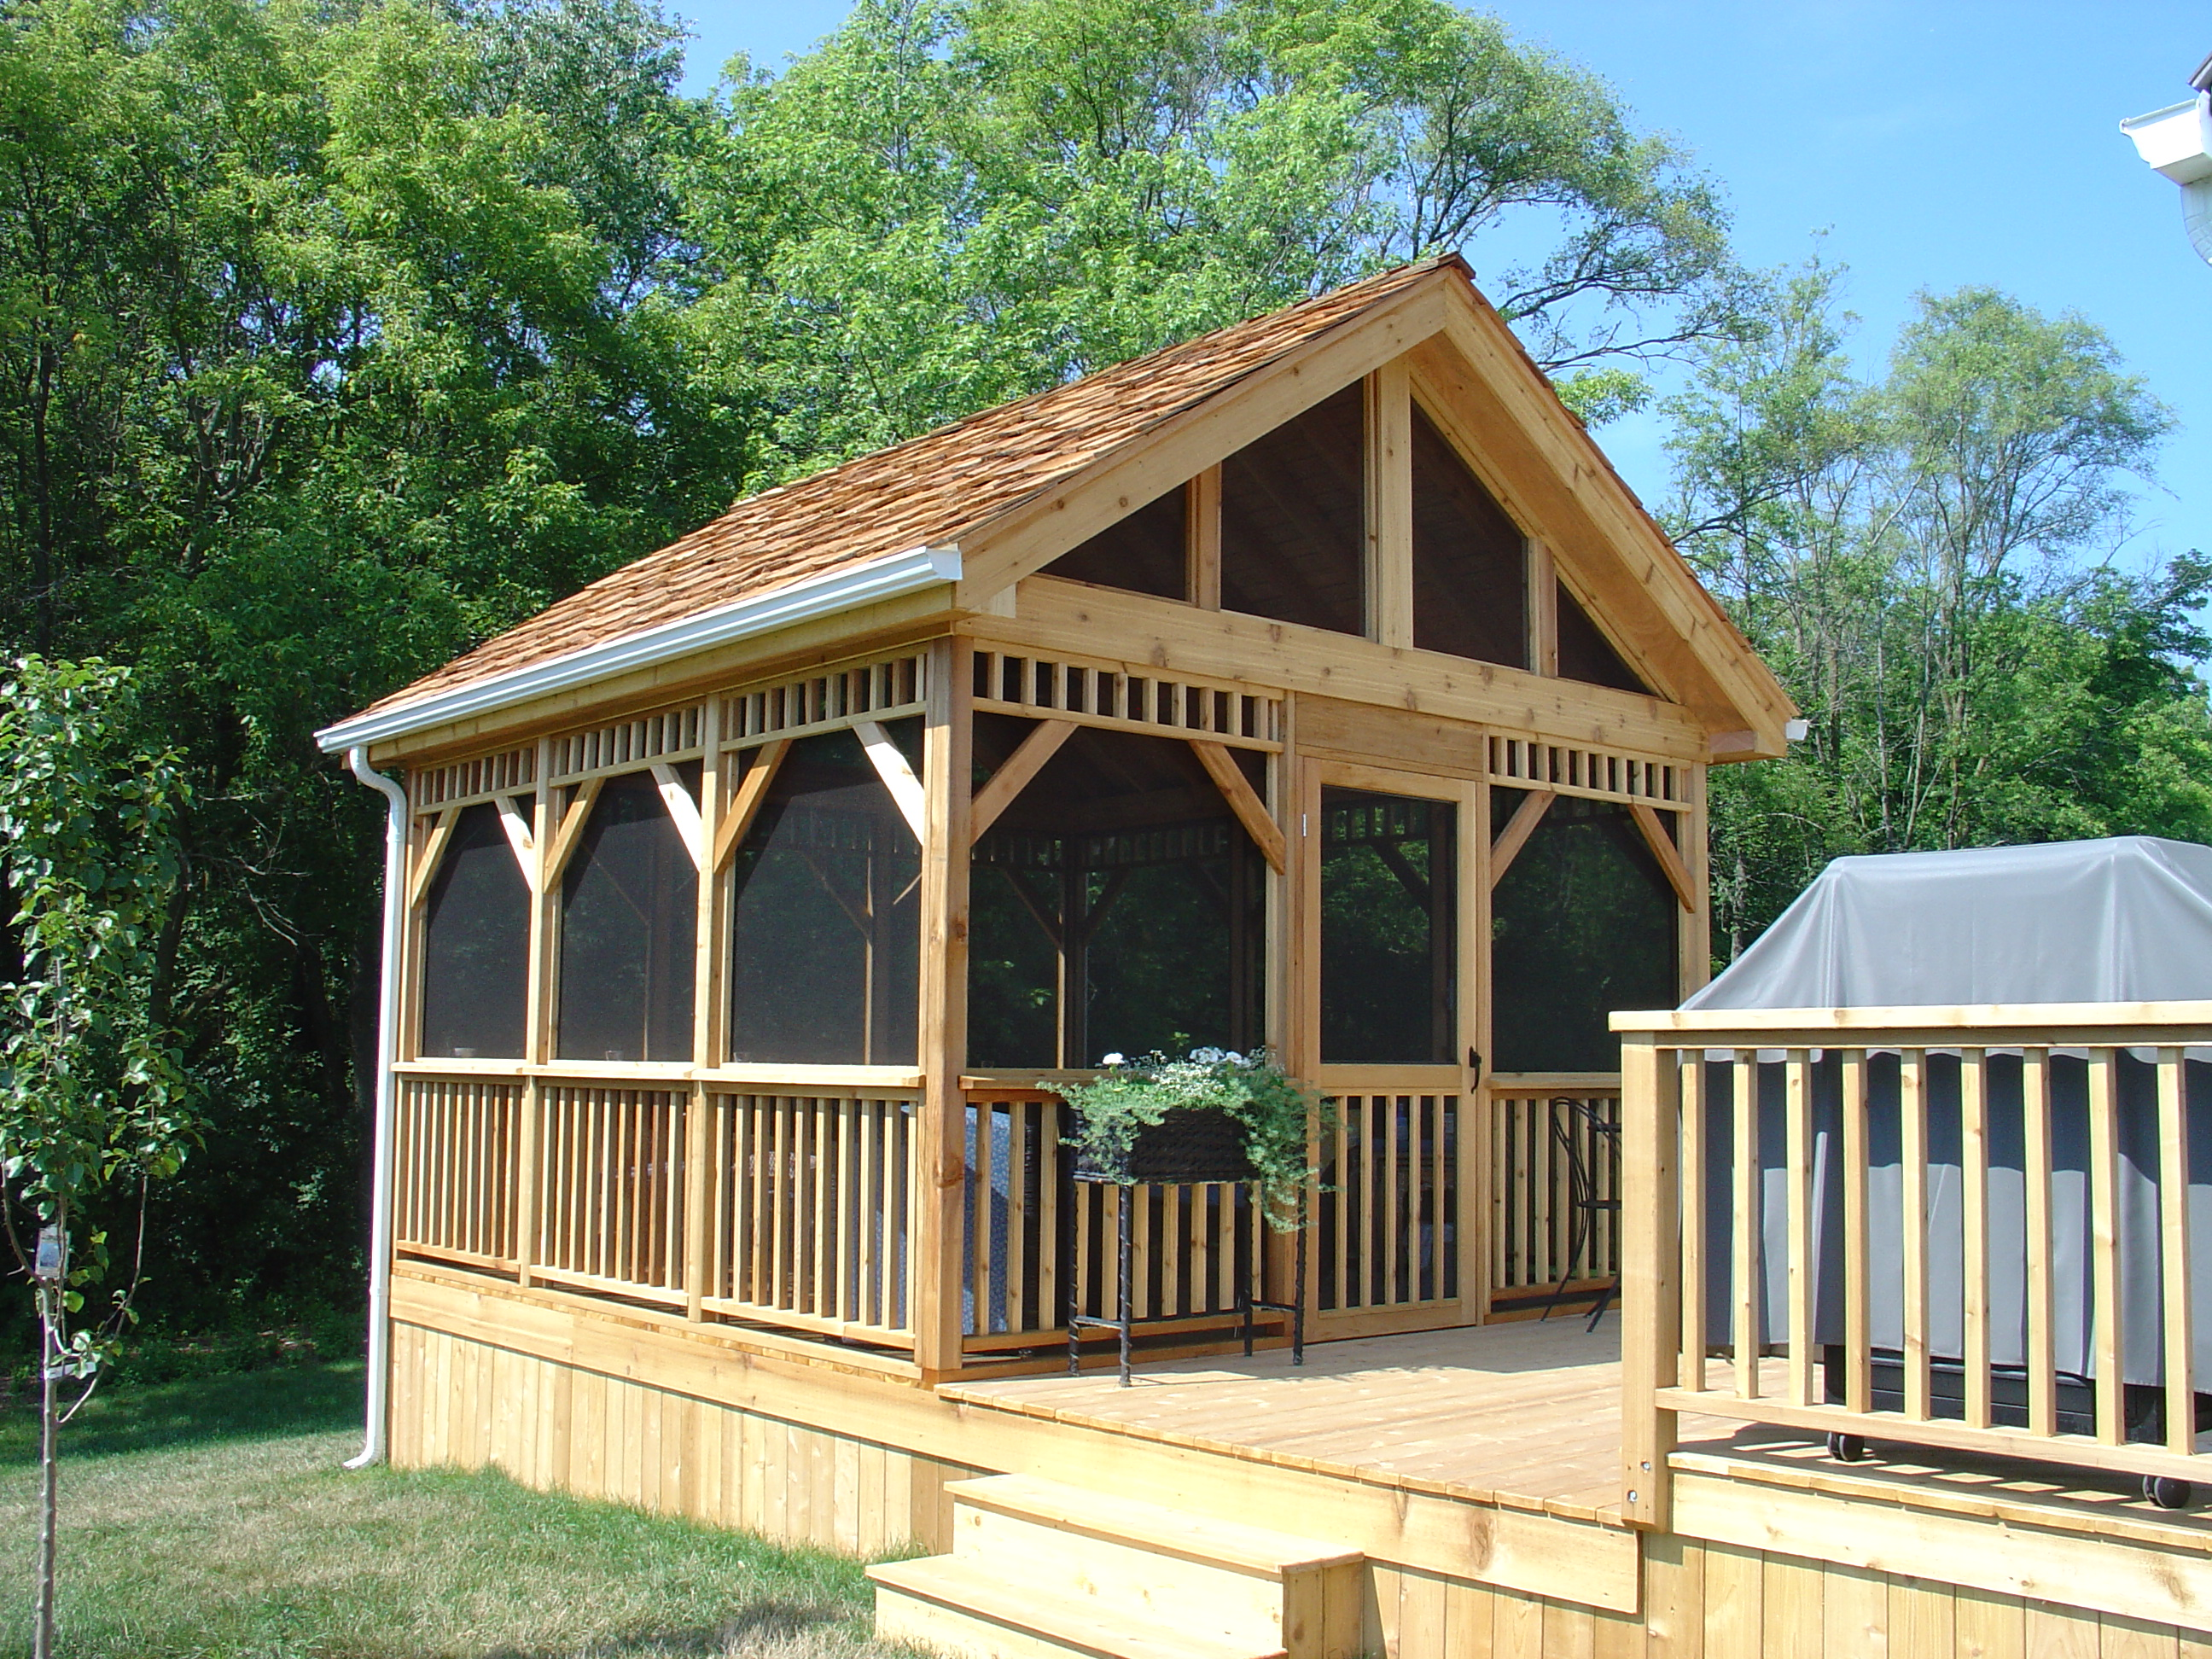 Gazebo screened room builders illinois hoffman estates for Screen room plans